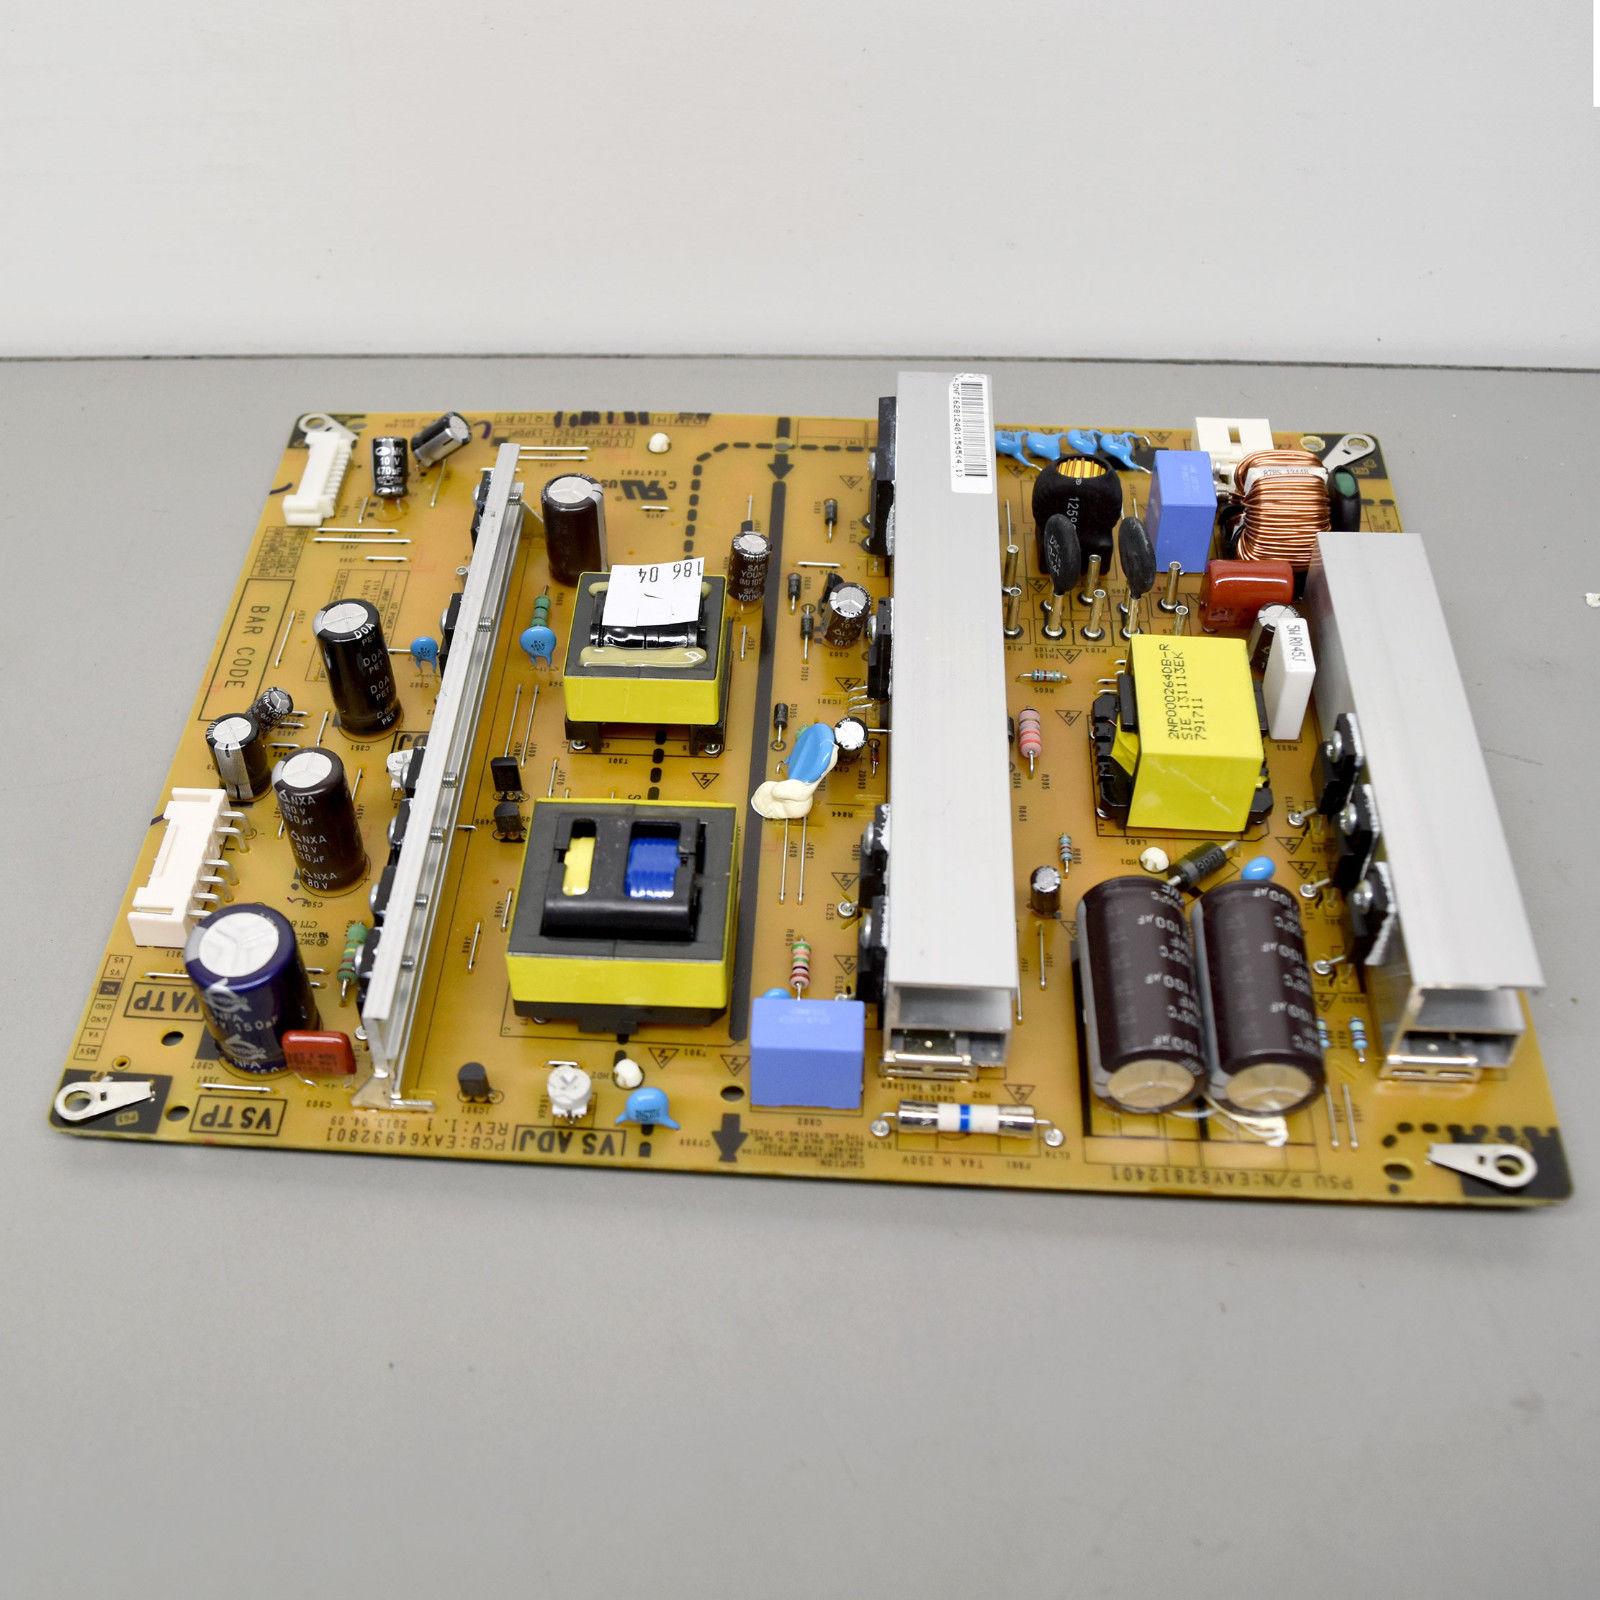 LG EAY62812401 (3PCR00220A, EAX64932801) Power Supply 42PA4500 4